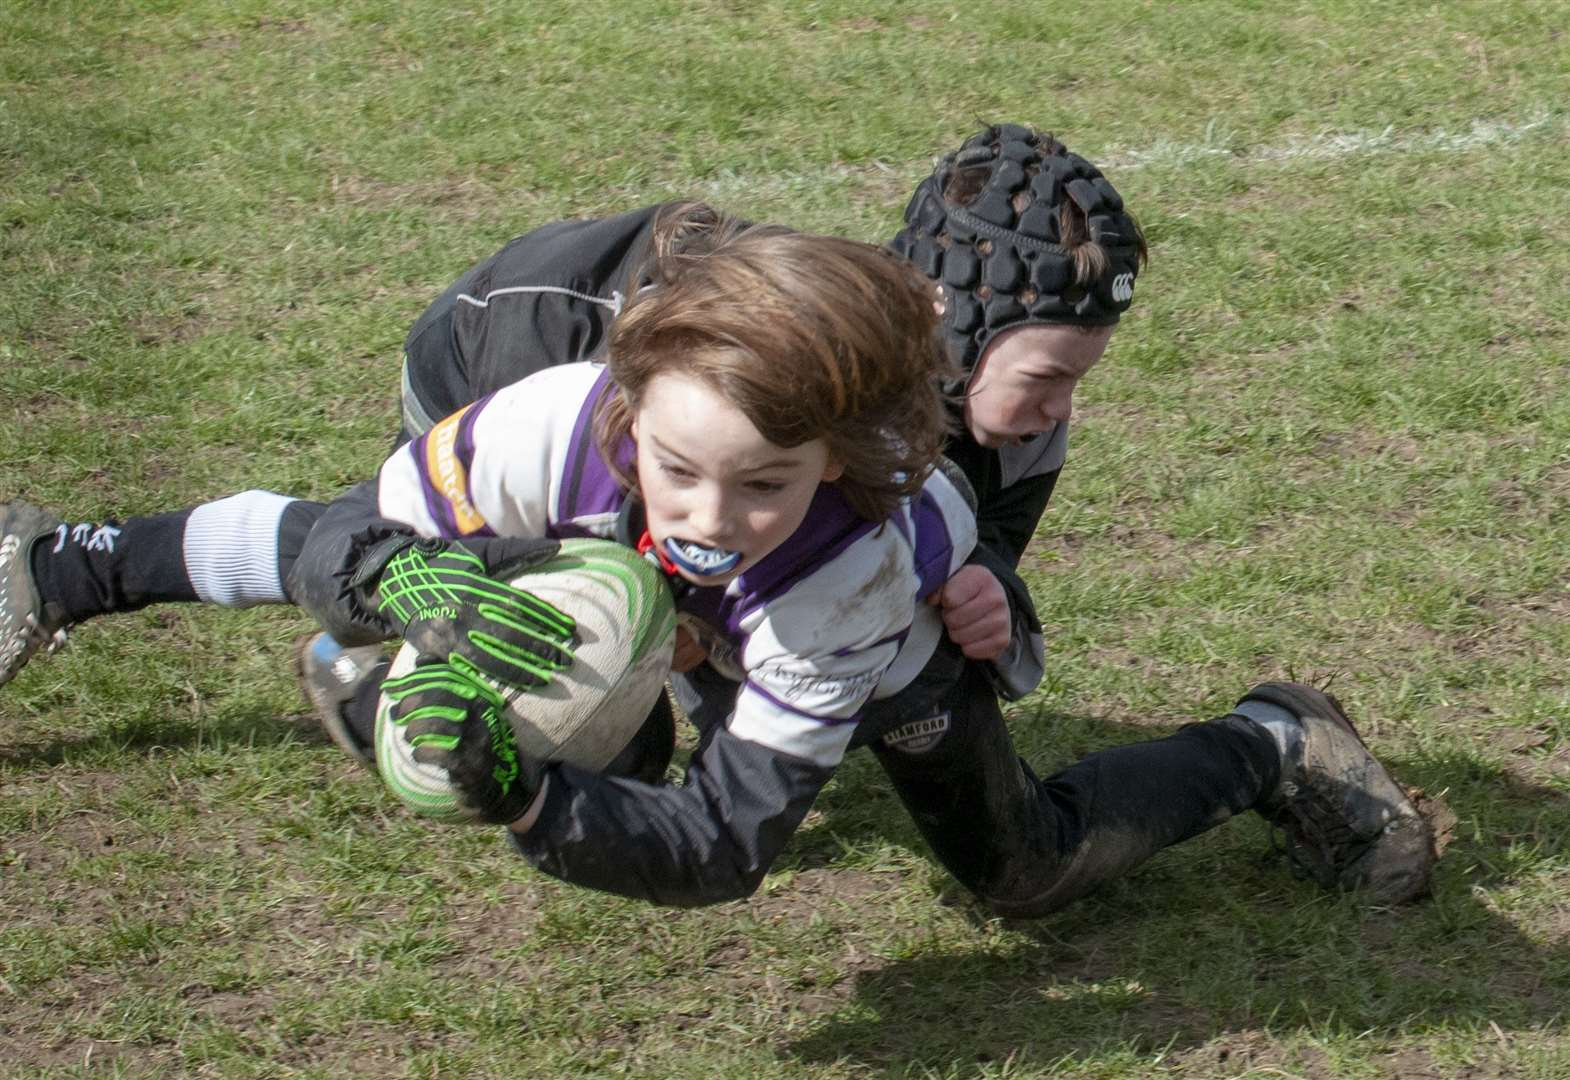 RUGBY: Youngsters turn out in force for first weekend of Stamford festival